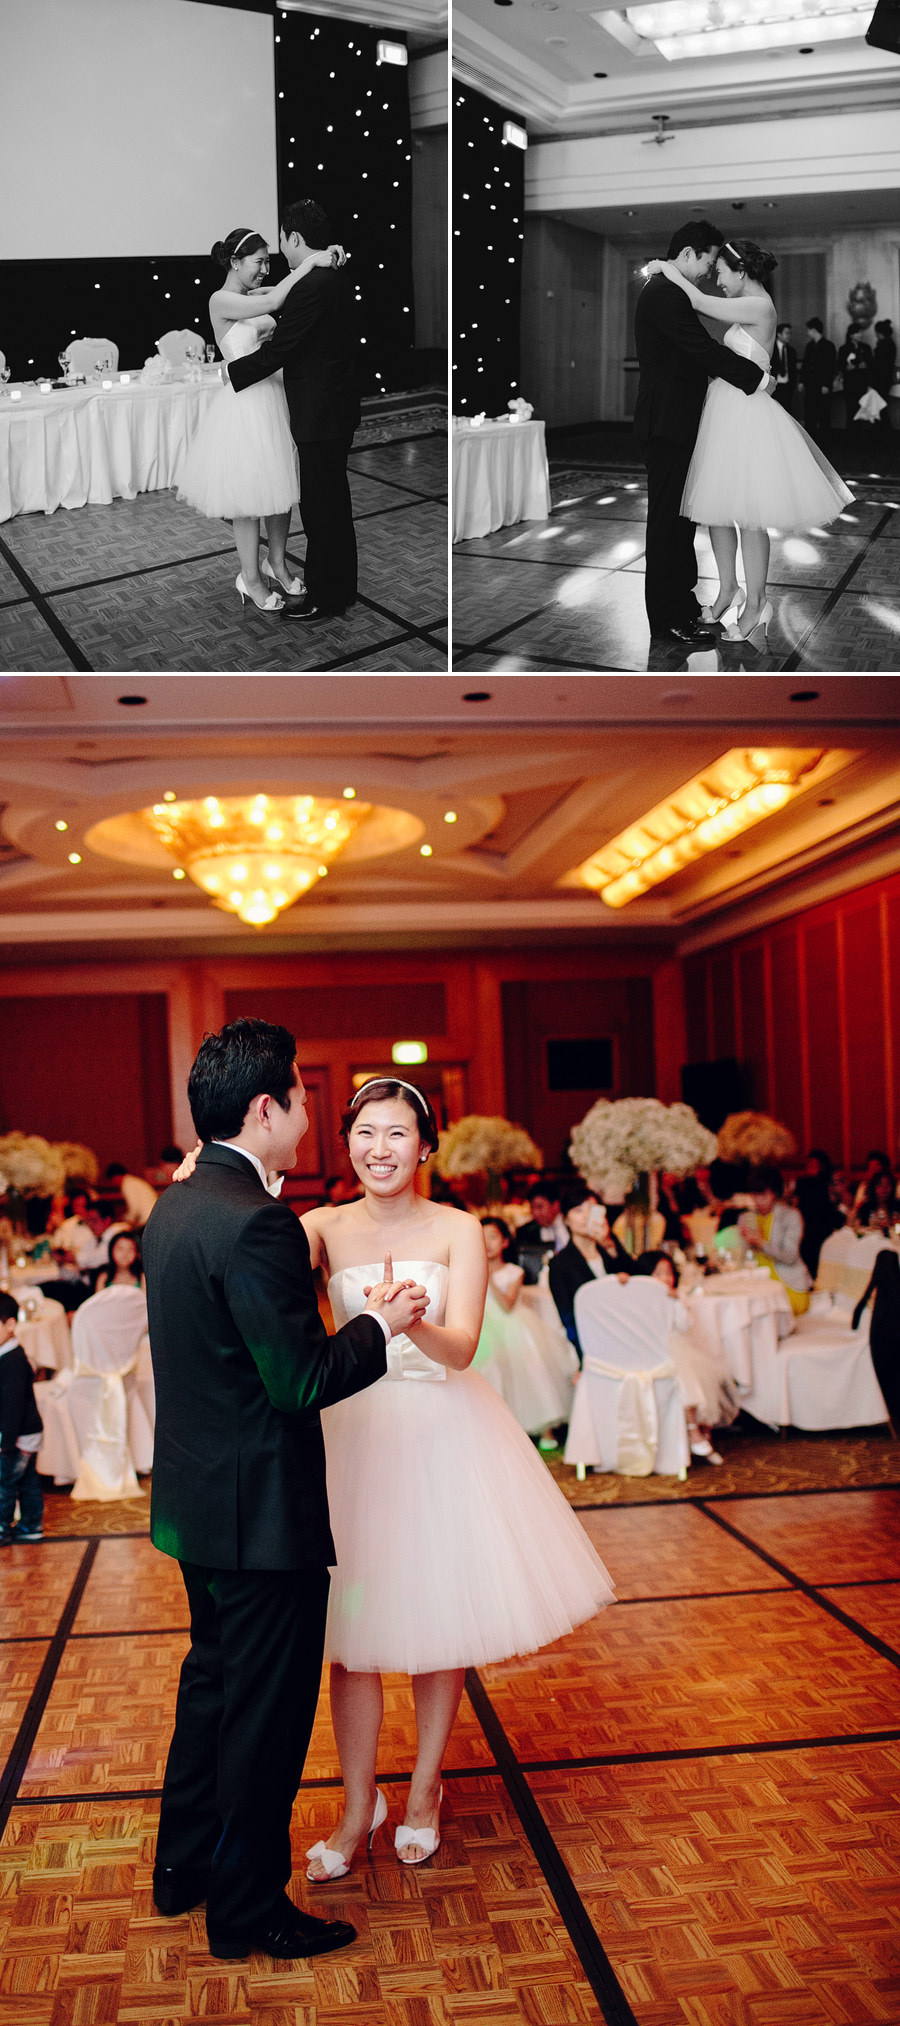 Shangrila Hotel Wedding Photograph: First dance